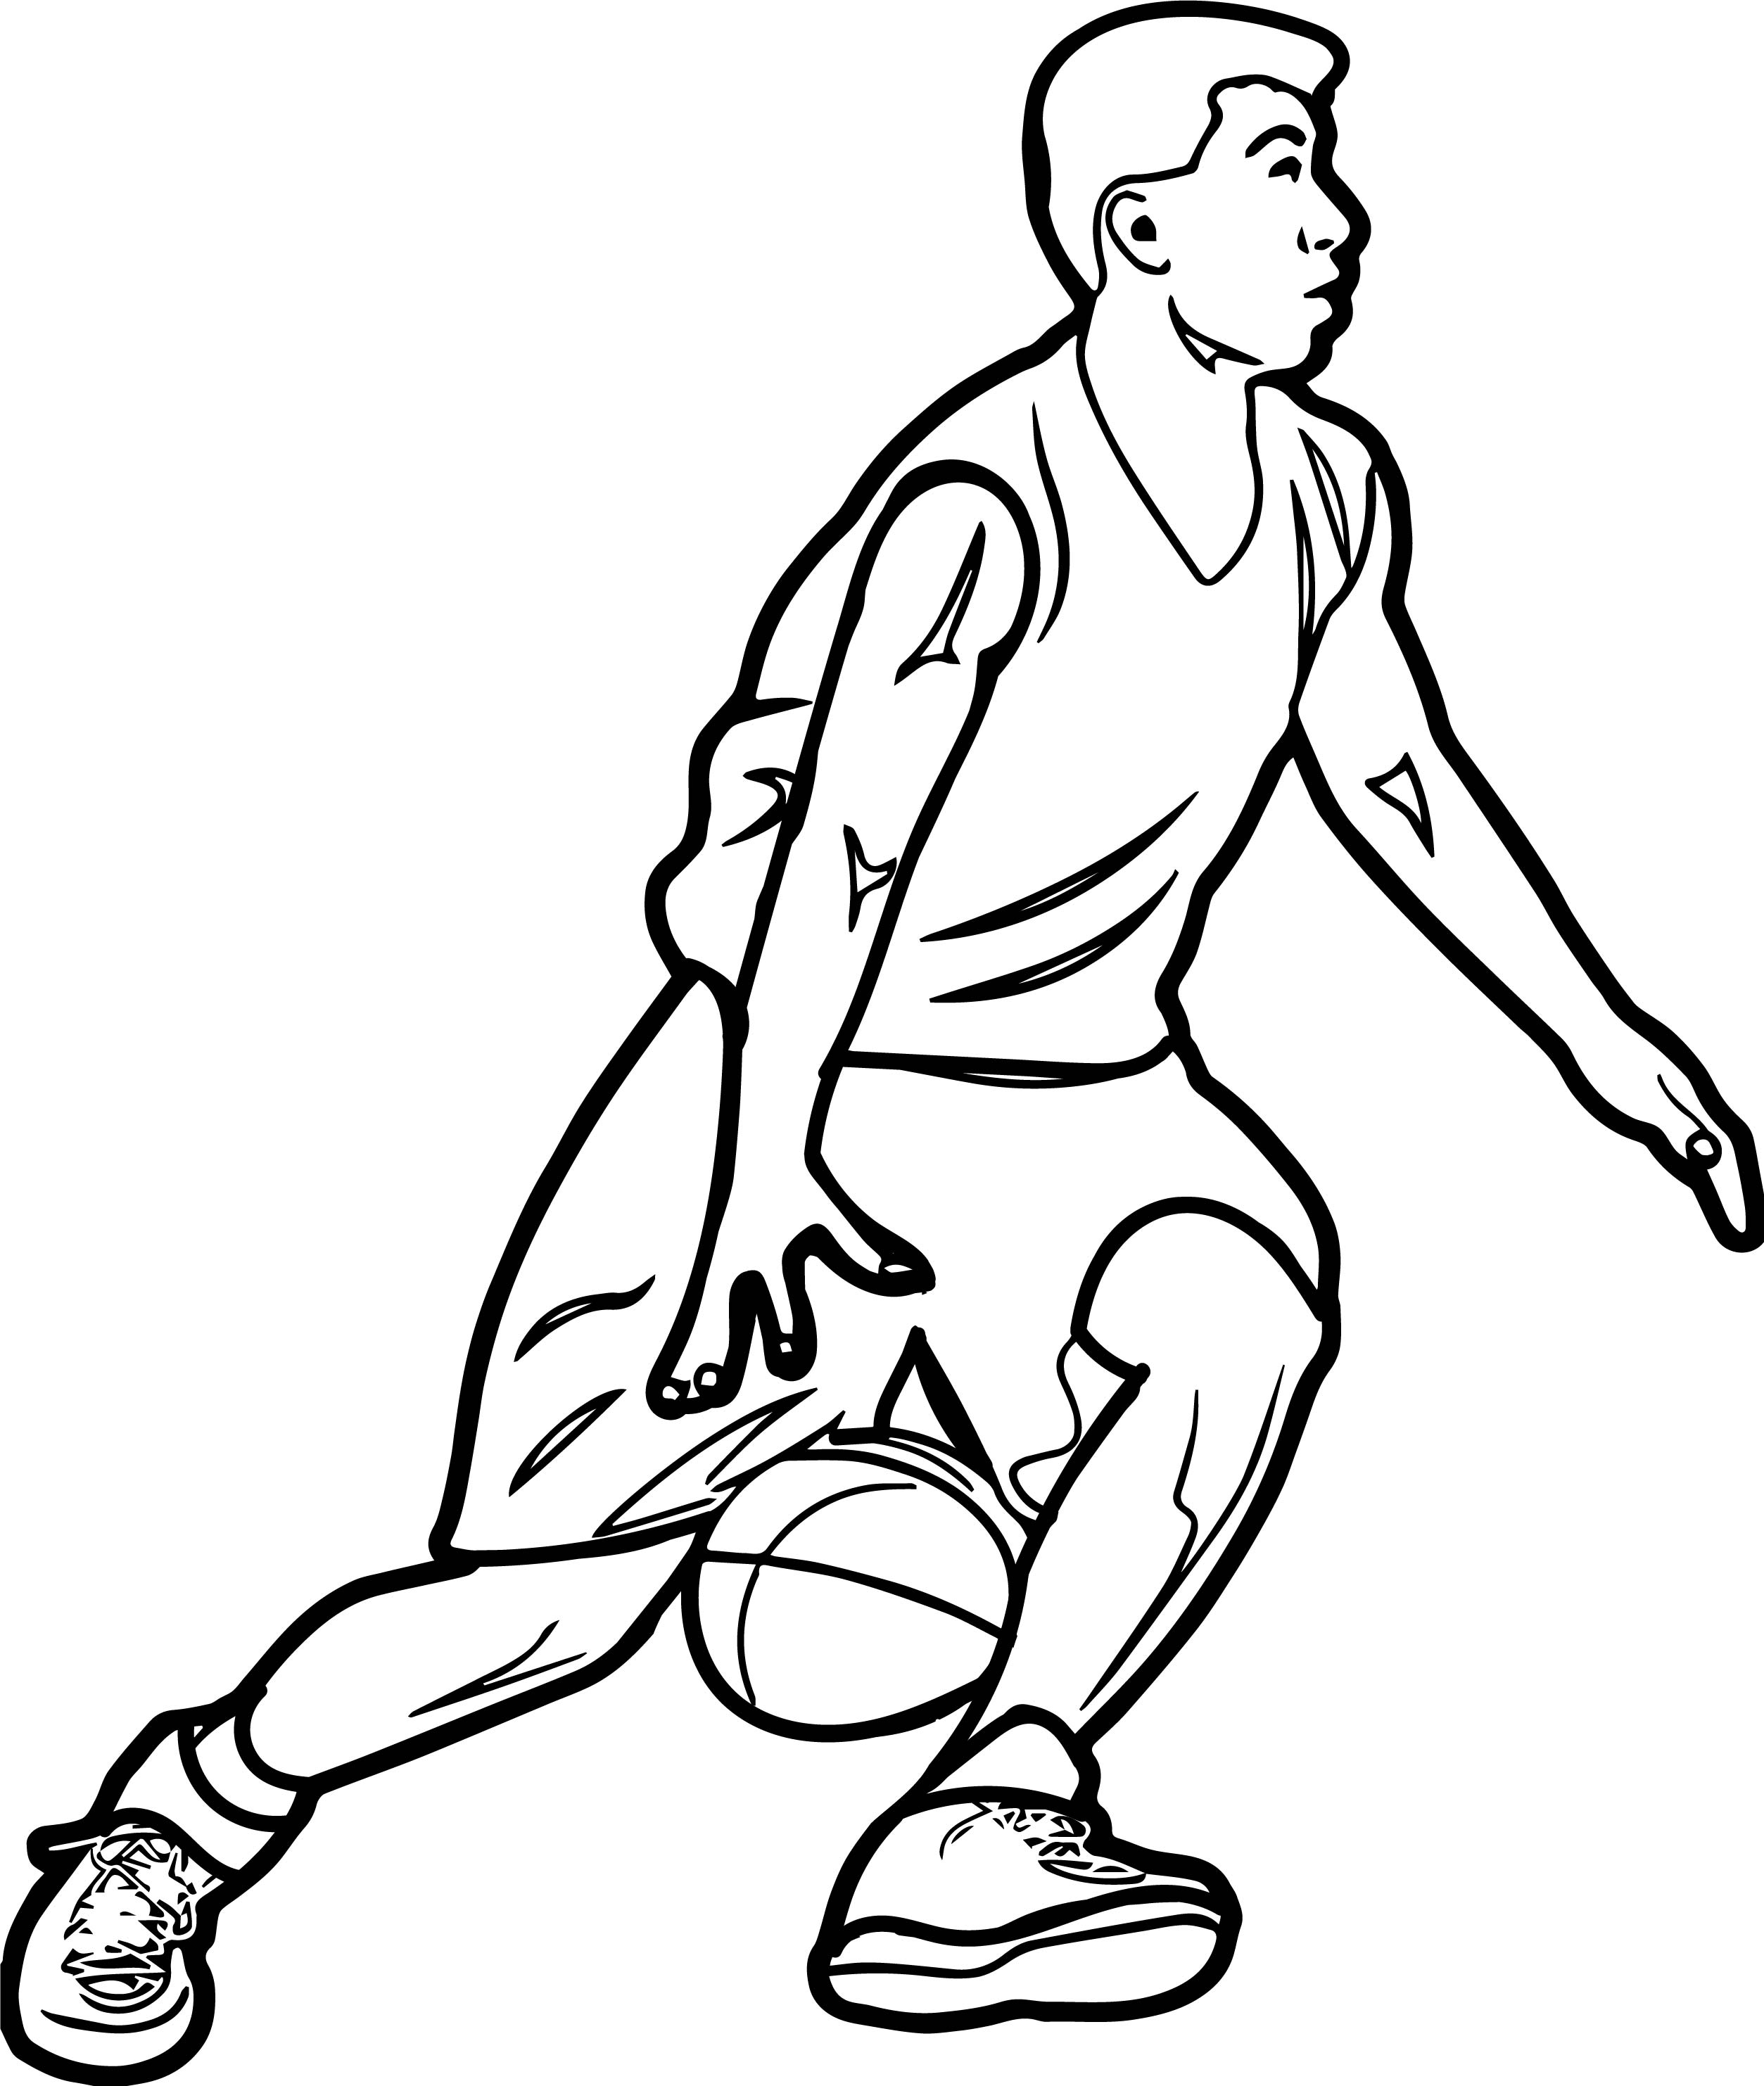 Dude Perfect Coloring Page